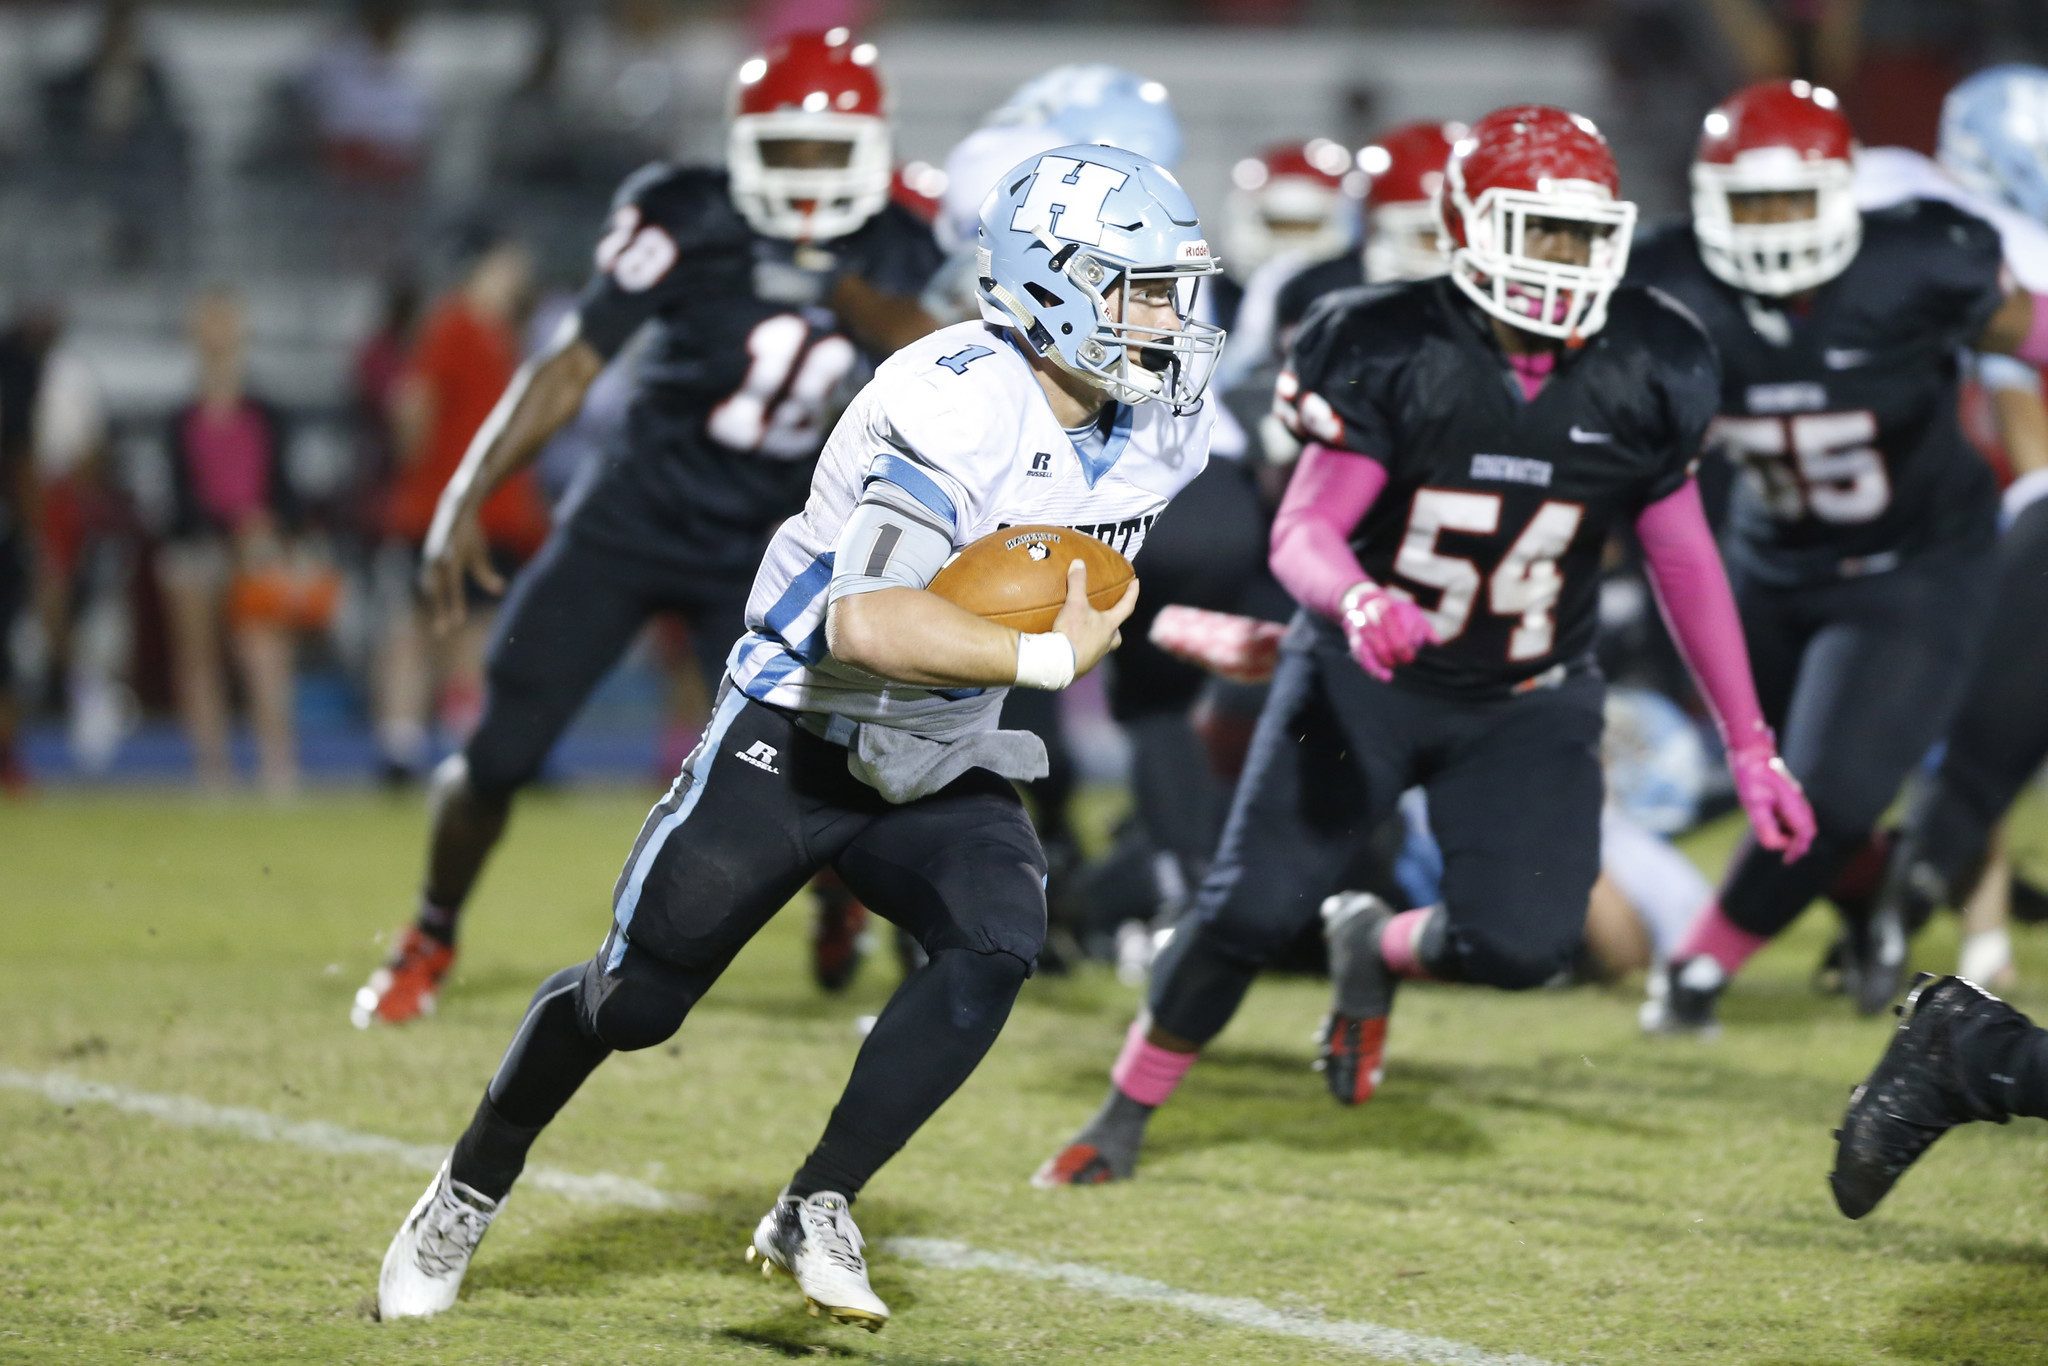 Hagerty Beats Edgewater For First District Title Orlando Sentinel